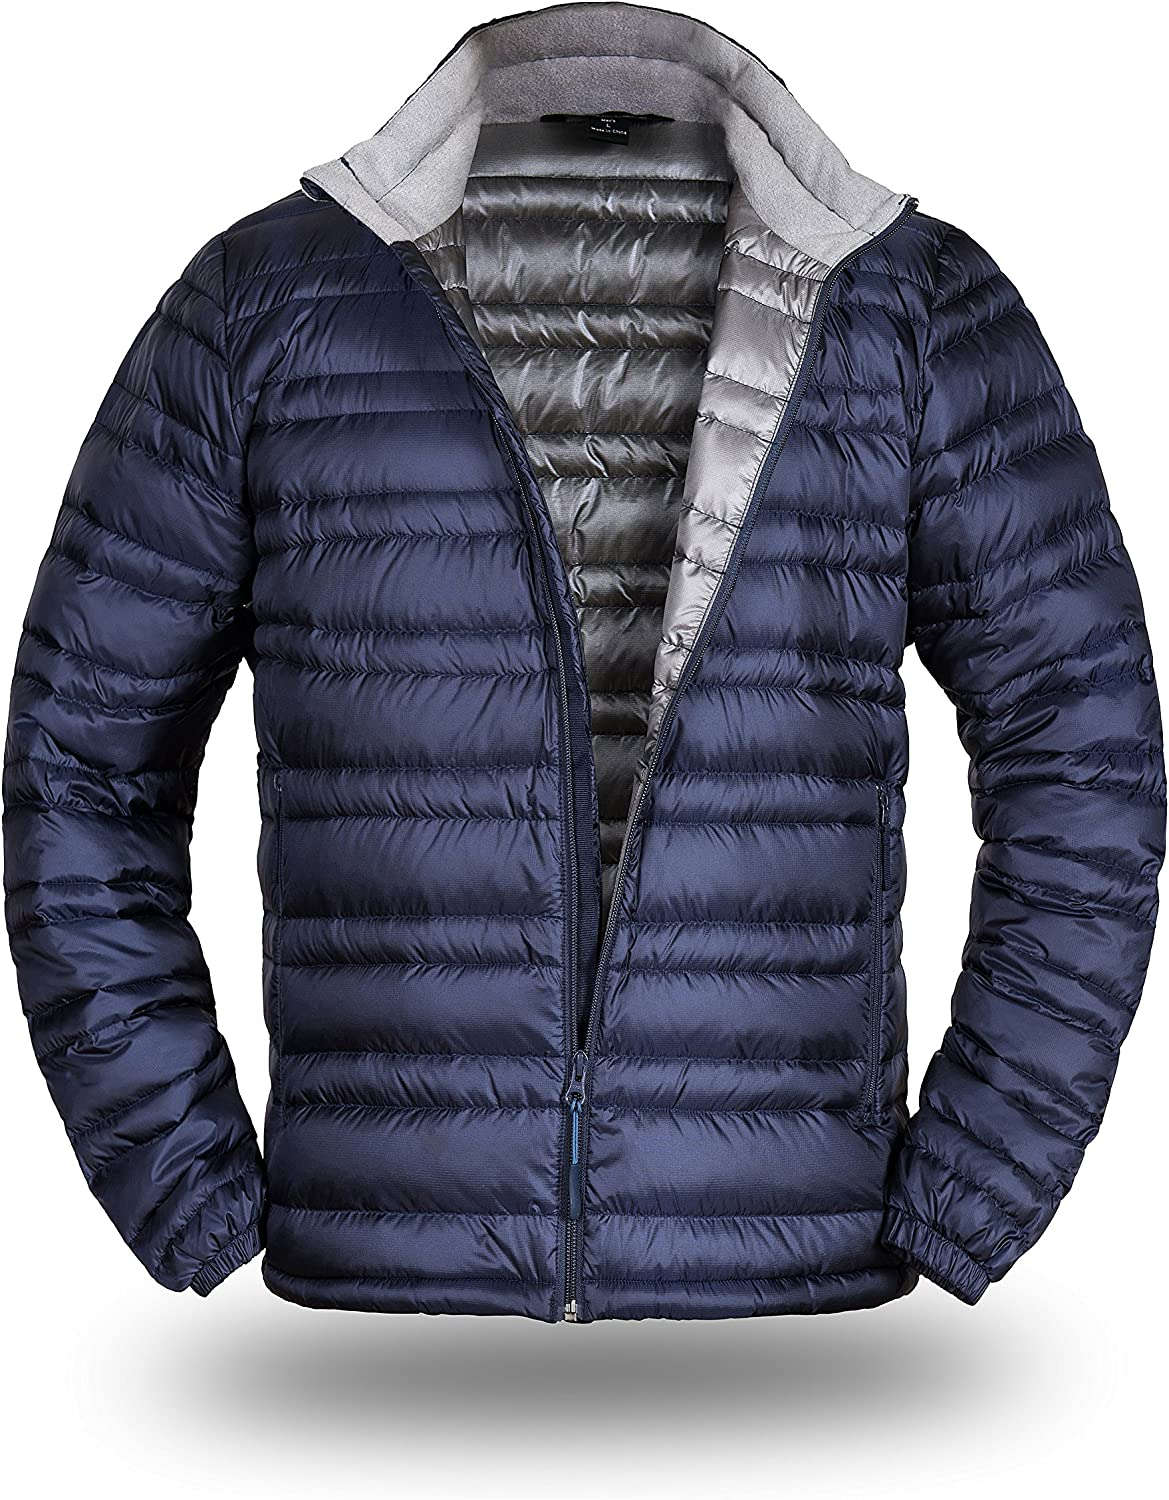 Cordillera Men's Lightweight Down Jacket Deep Blue eVwKC